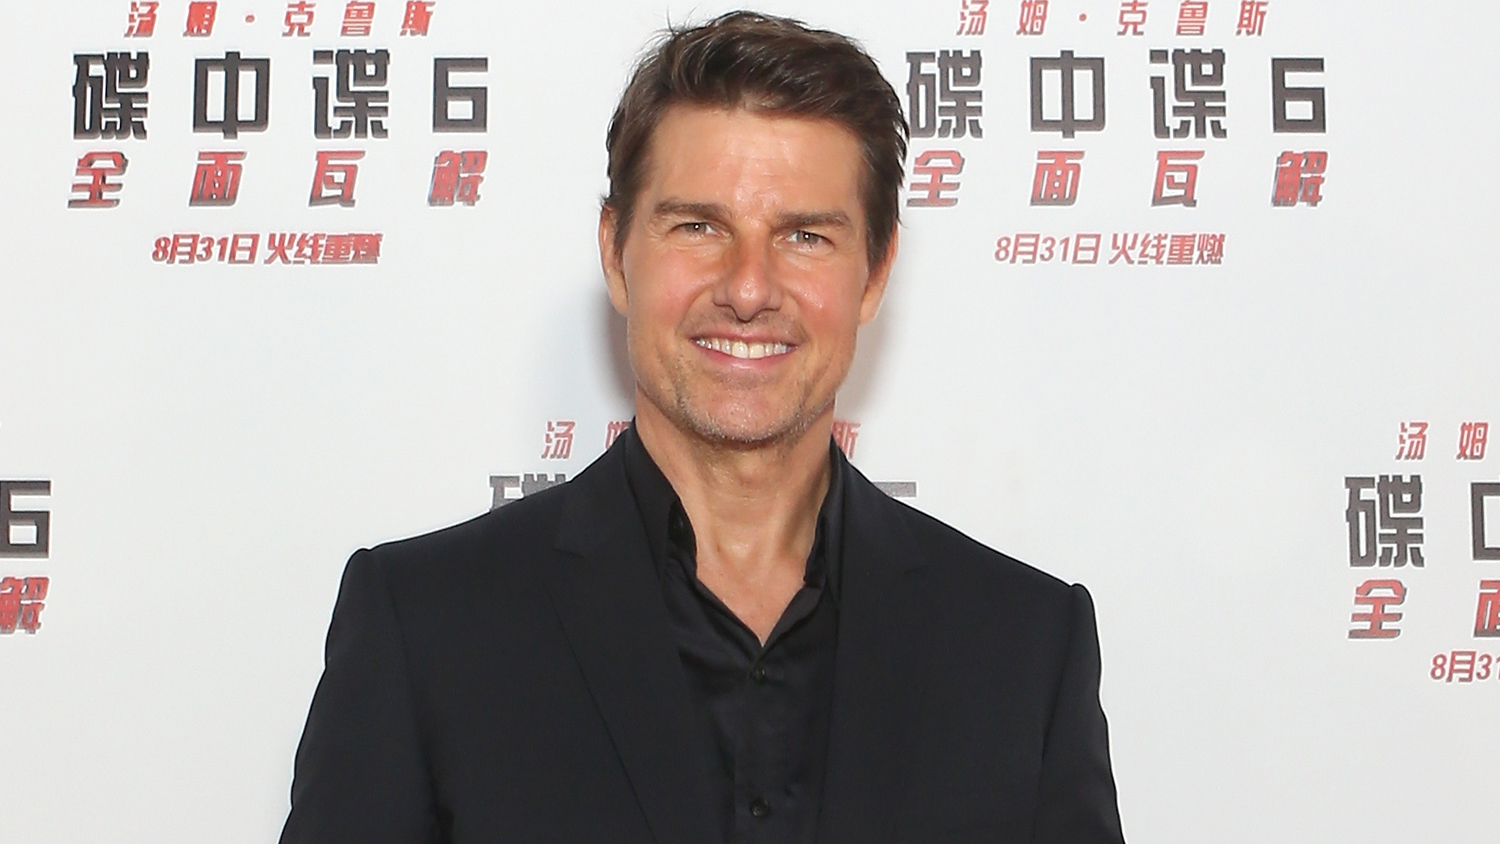 Tom Cruise returns to the movies — as a fan seeing 'Tenet' in a theater: 'Loved it' – Fox News